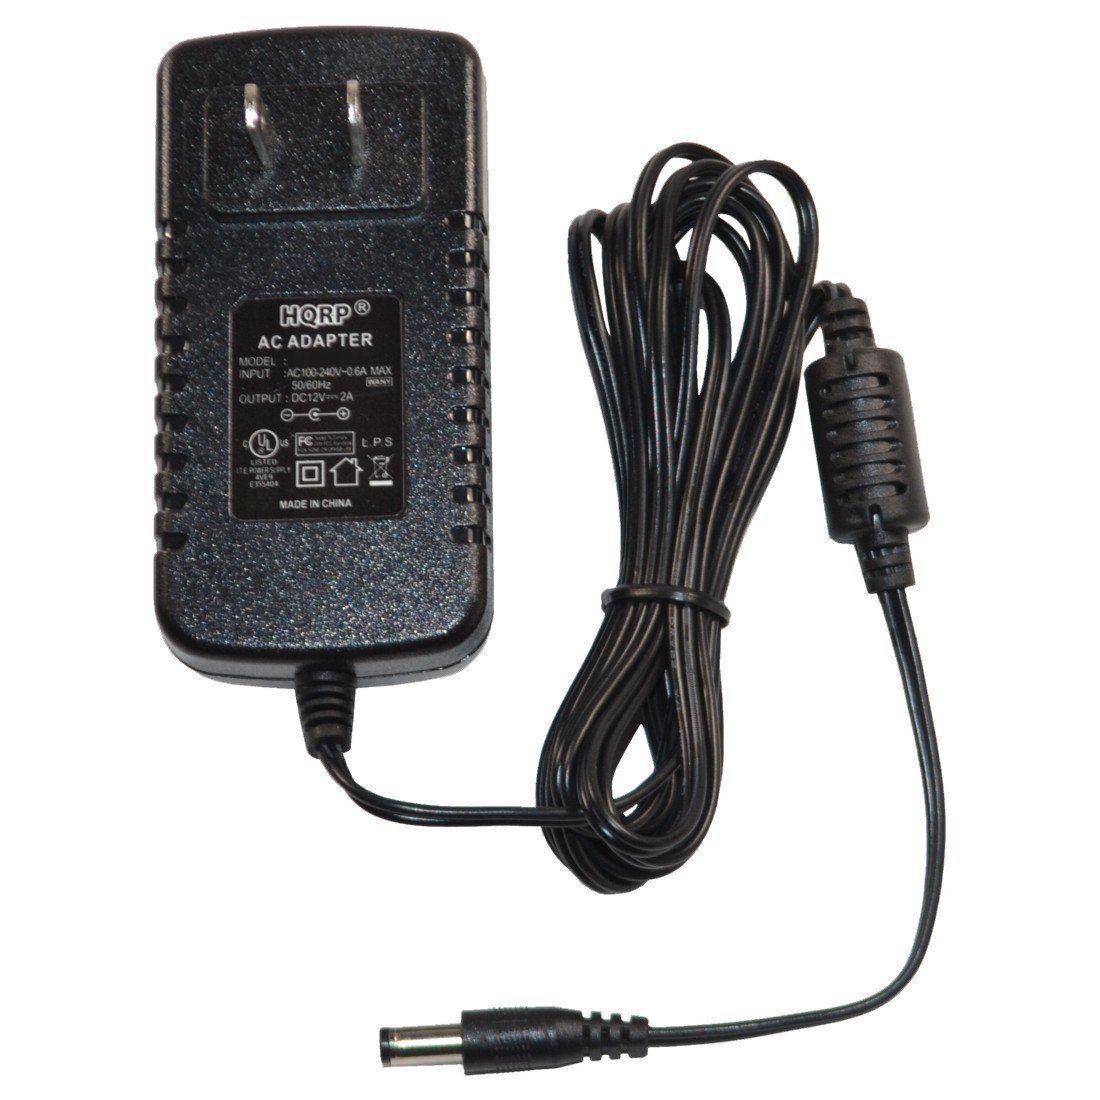 Amazon.com: HQRP AC Adapter for Horizon Fitness 088261 fits 2.3E 3.2 ...